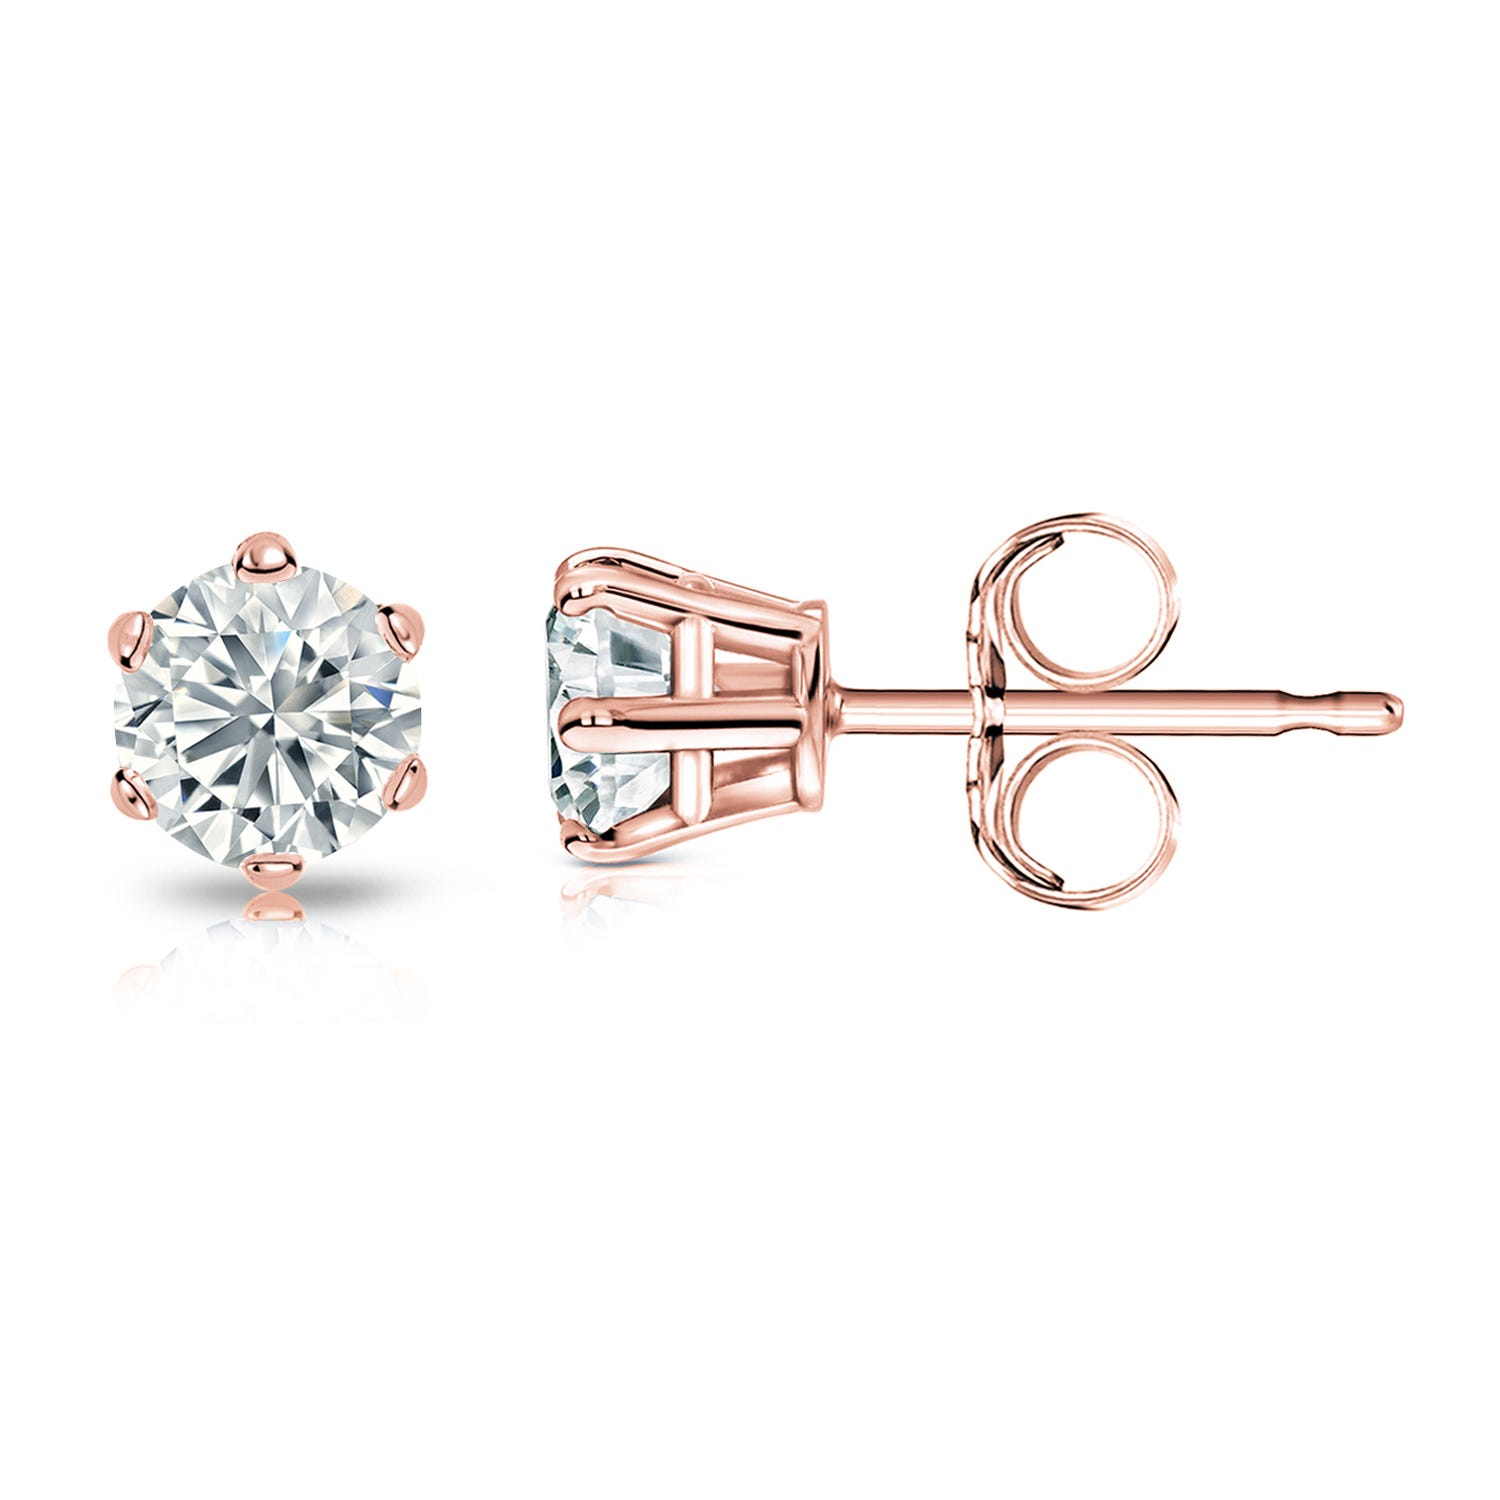 Round Diamond 5/8ctw. (IJ-I2) Solitaire Stud 6-Prong Earrings in 14K Rose Gold